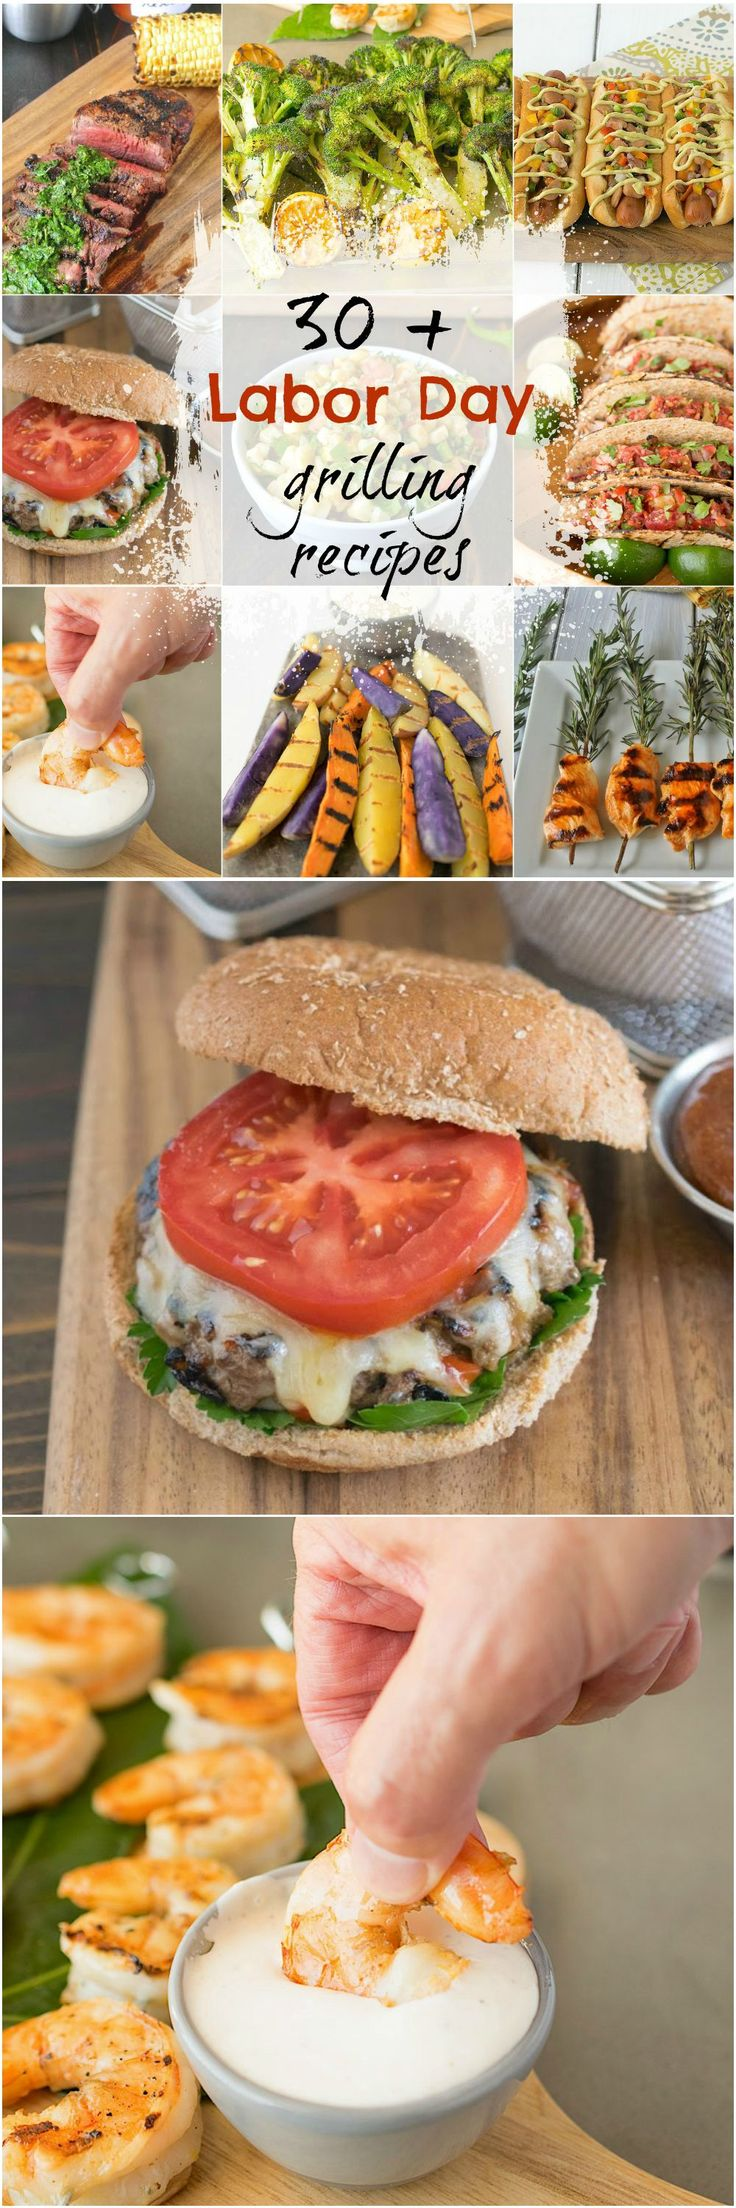 30 + Labor Day grilling recipes to help you with your Labor Day meal planning. From side dishes, to meat, to seafood and burgers, I have you covered. #laborday #grilling